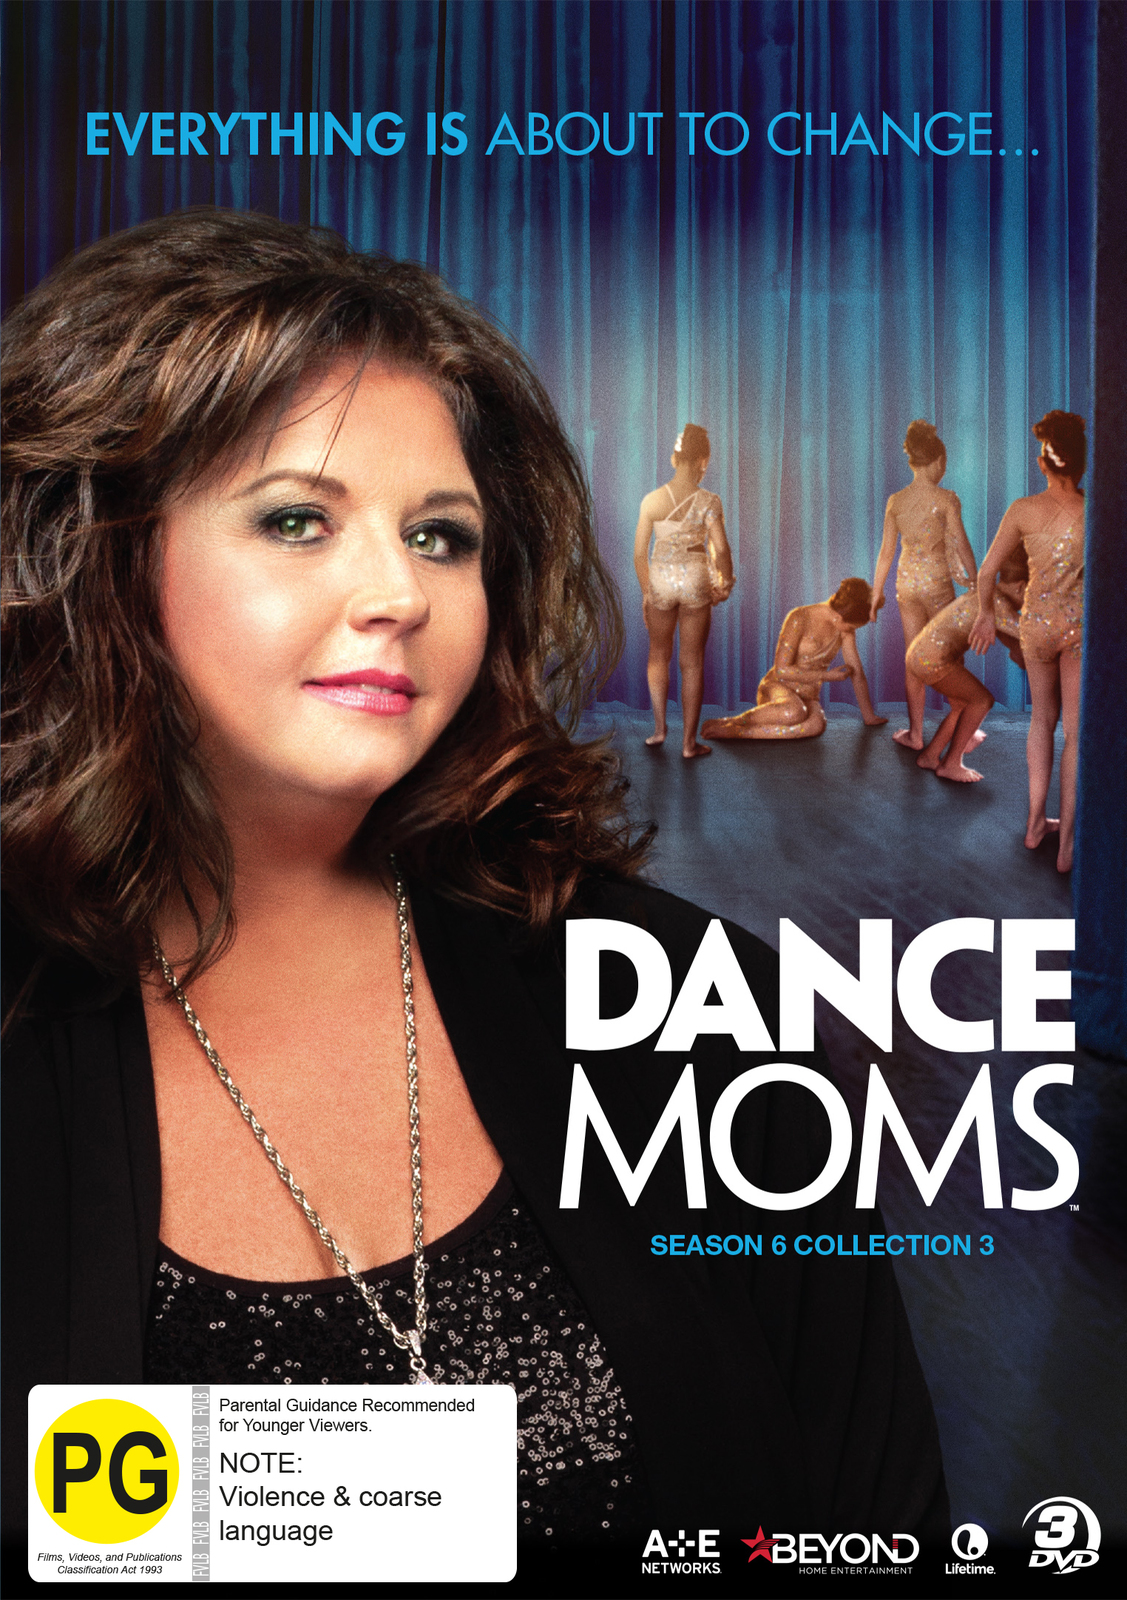 Dance Moms: Season 6 - Collection 3 DVD image